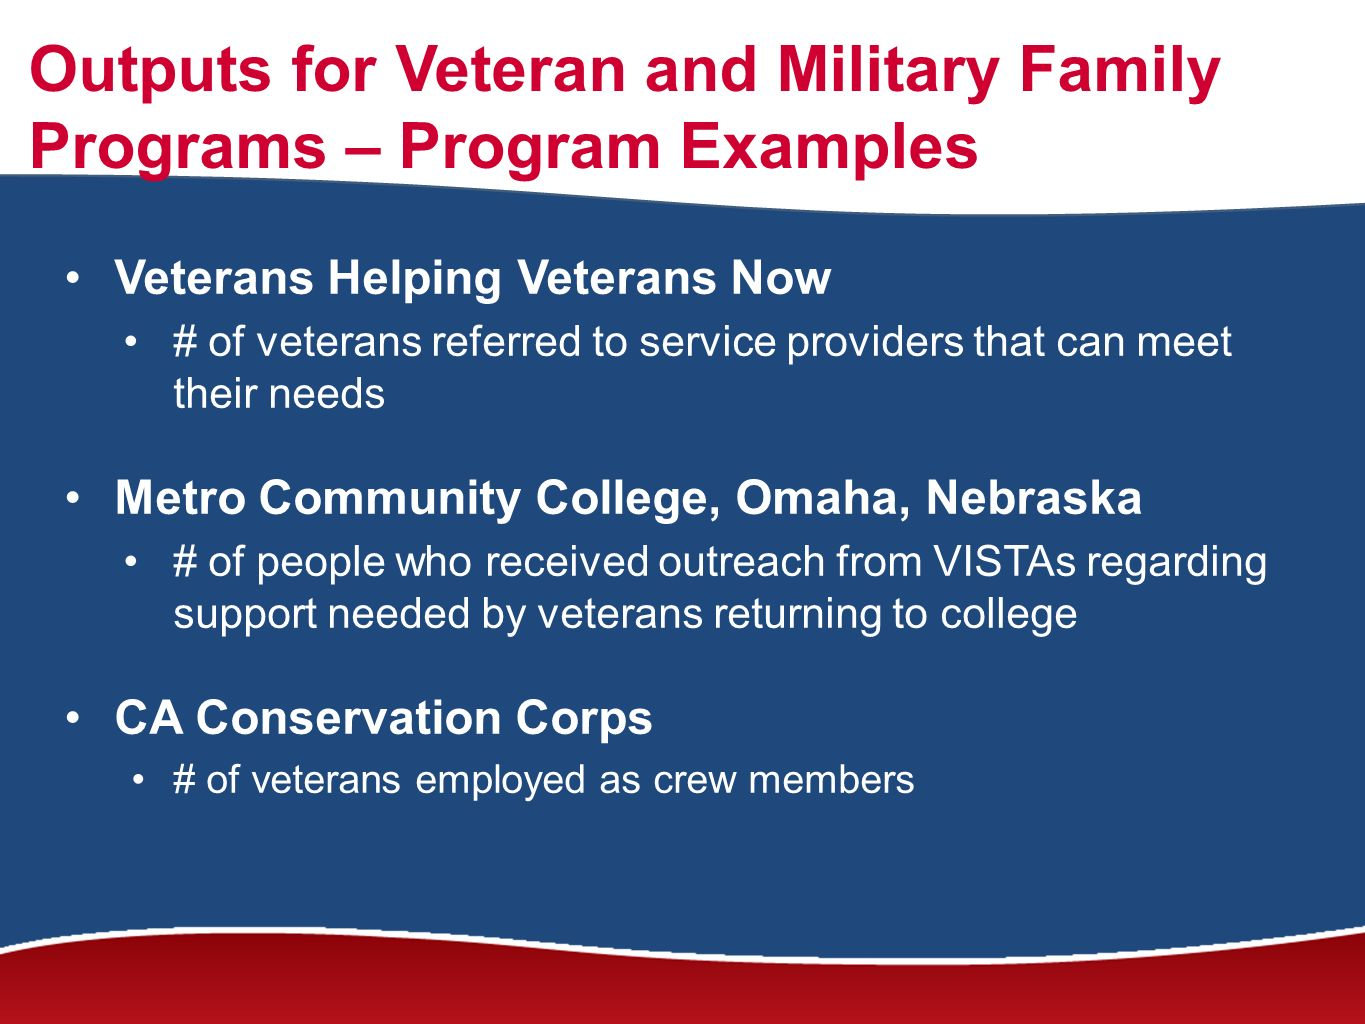 Outputs for Veteran and Military Family Programs – Program Examples Veterans Helping Veterans Now # of veterans referred to service providers that can meet their needs Metro Community College, Omaha, Nebraska # of people who received outreach from VISTAs regarding support needed by veterans returning to college CA Conservation Corps # of veterans employed as crew members